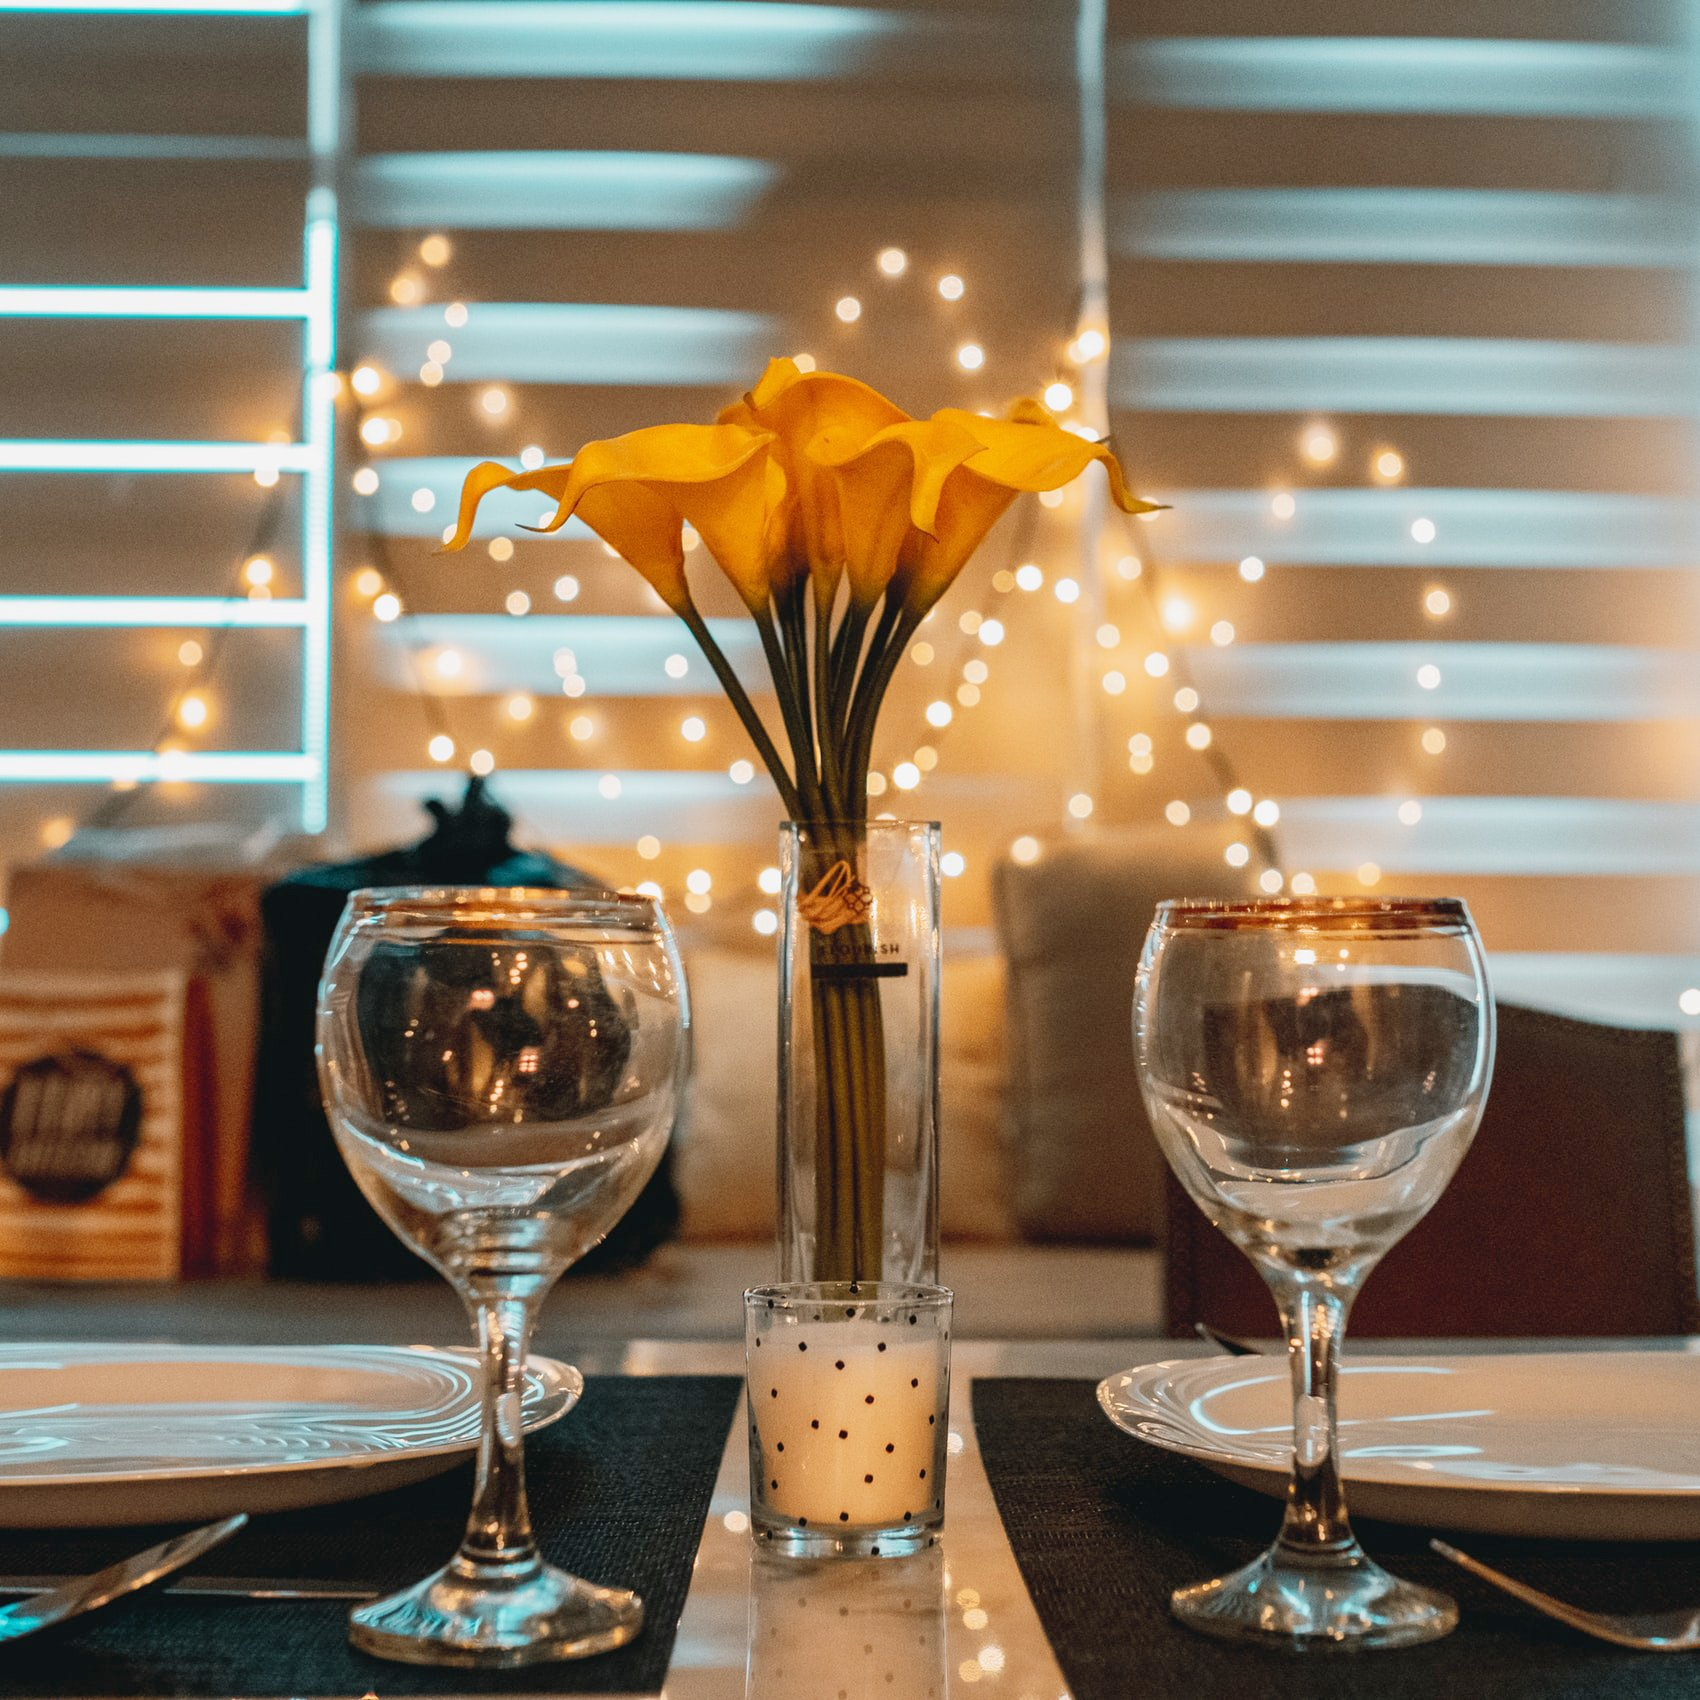 Wine glasses at dinner setting for meal delivery service